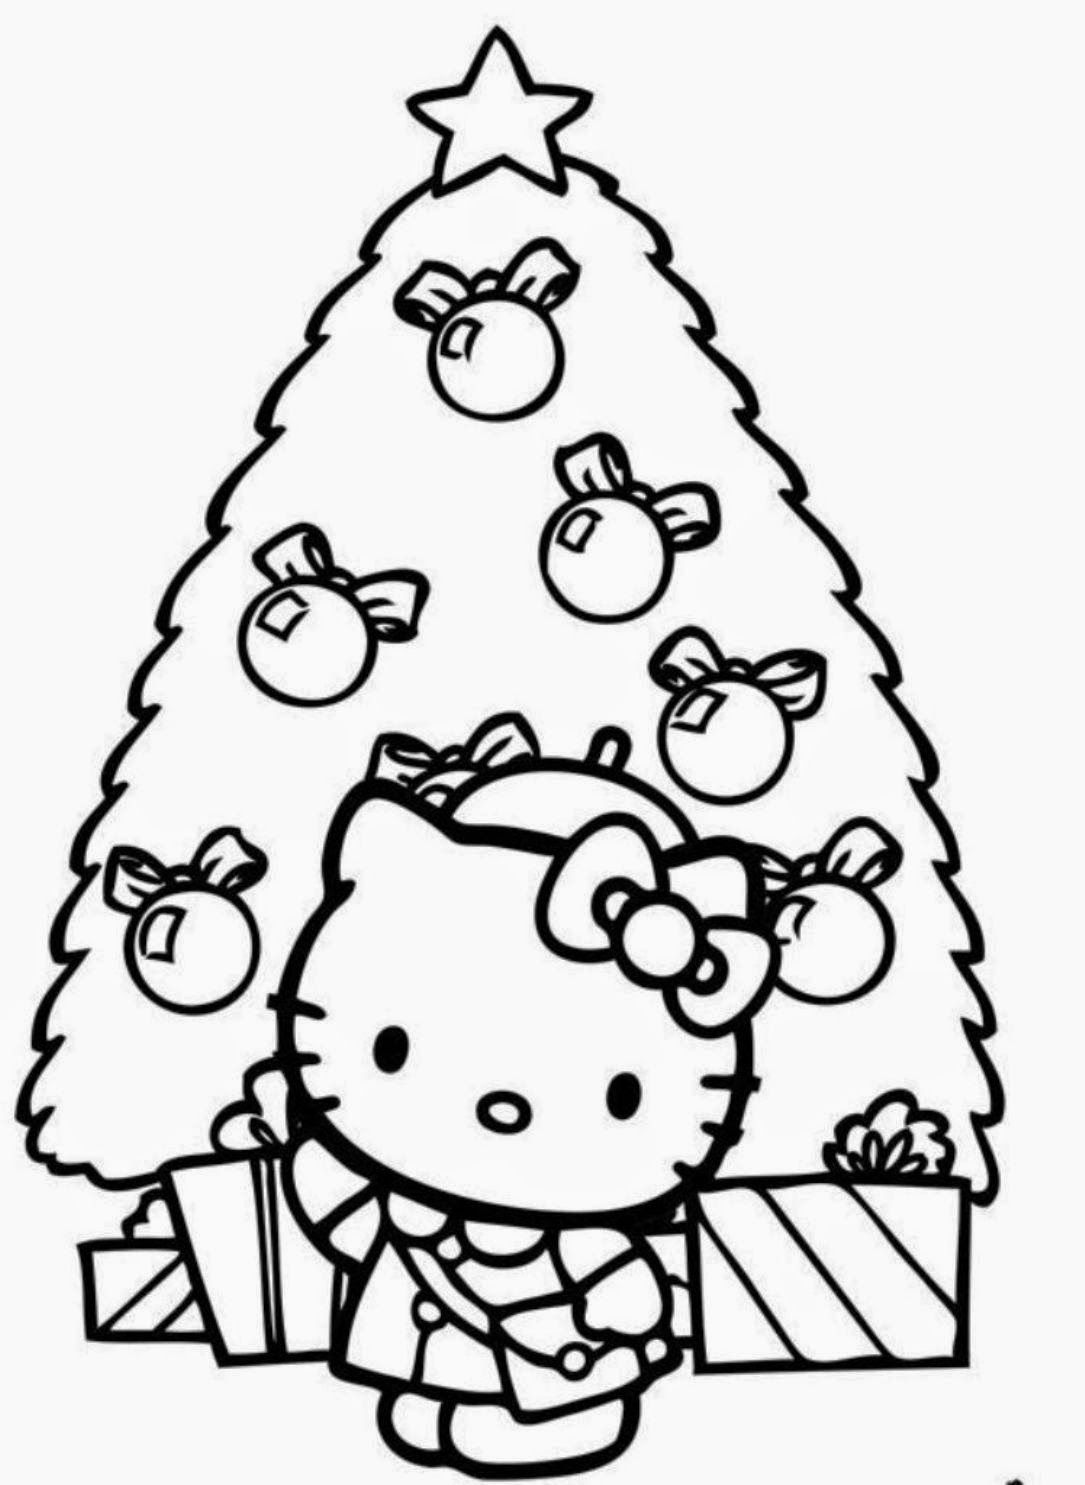 Free Printable Hello Kitty Coloring Pages Party Invitations Activity Sheets And Paper Crafts Hello Kitty Colouring Pages Hello Kitty Coloring Kitty Coloring